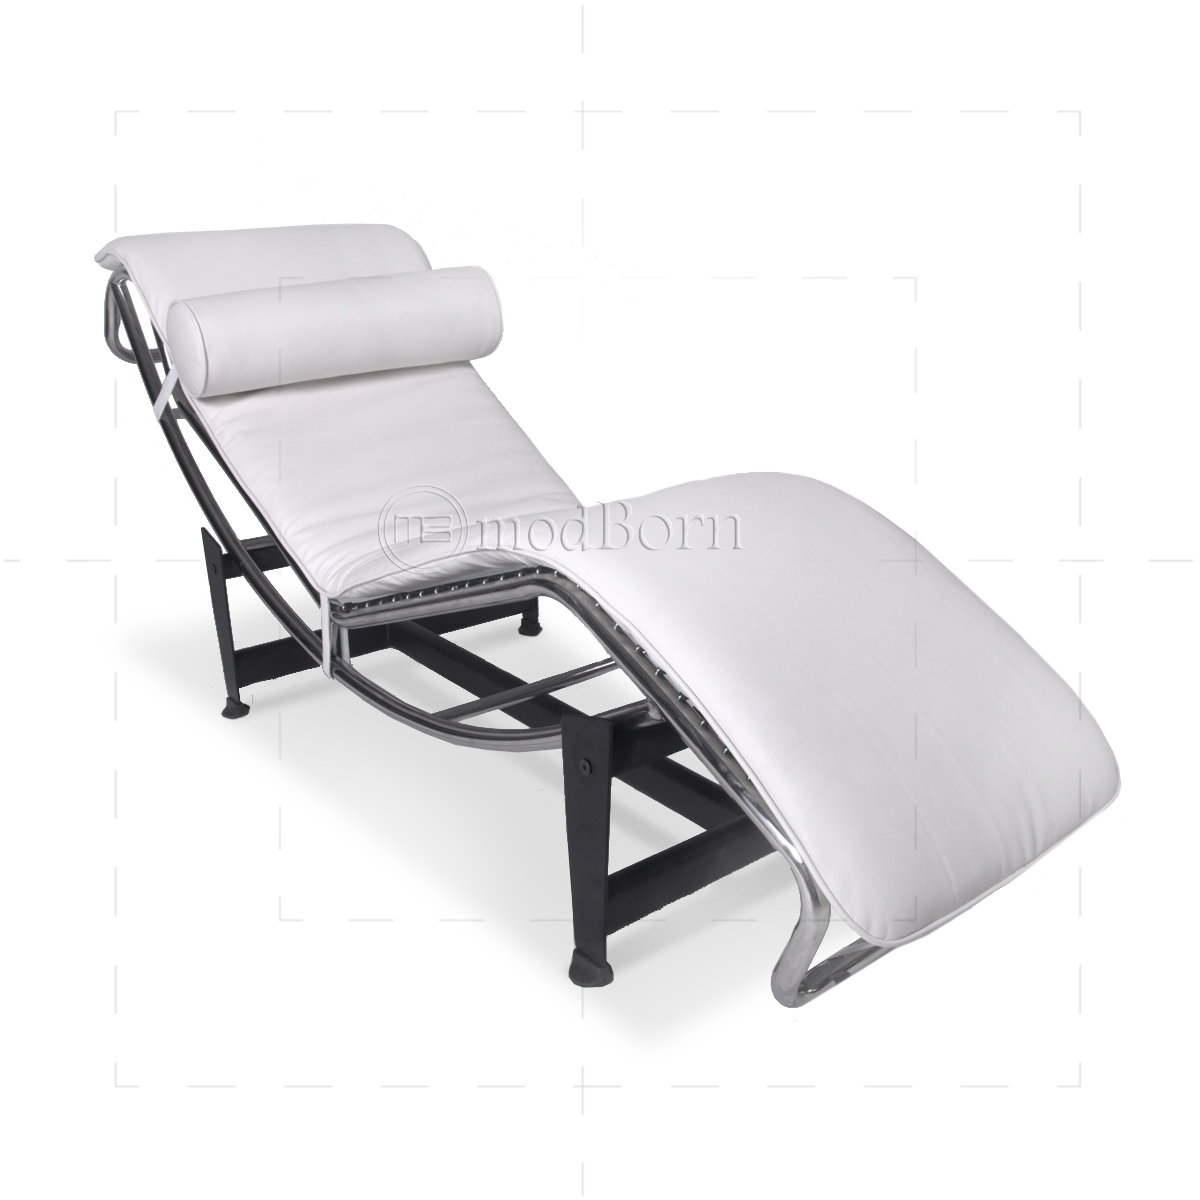 Le corbusier style lc4 chaise longue white leather replica for Chaise lounge cheap uk